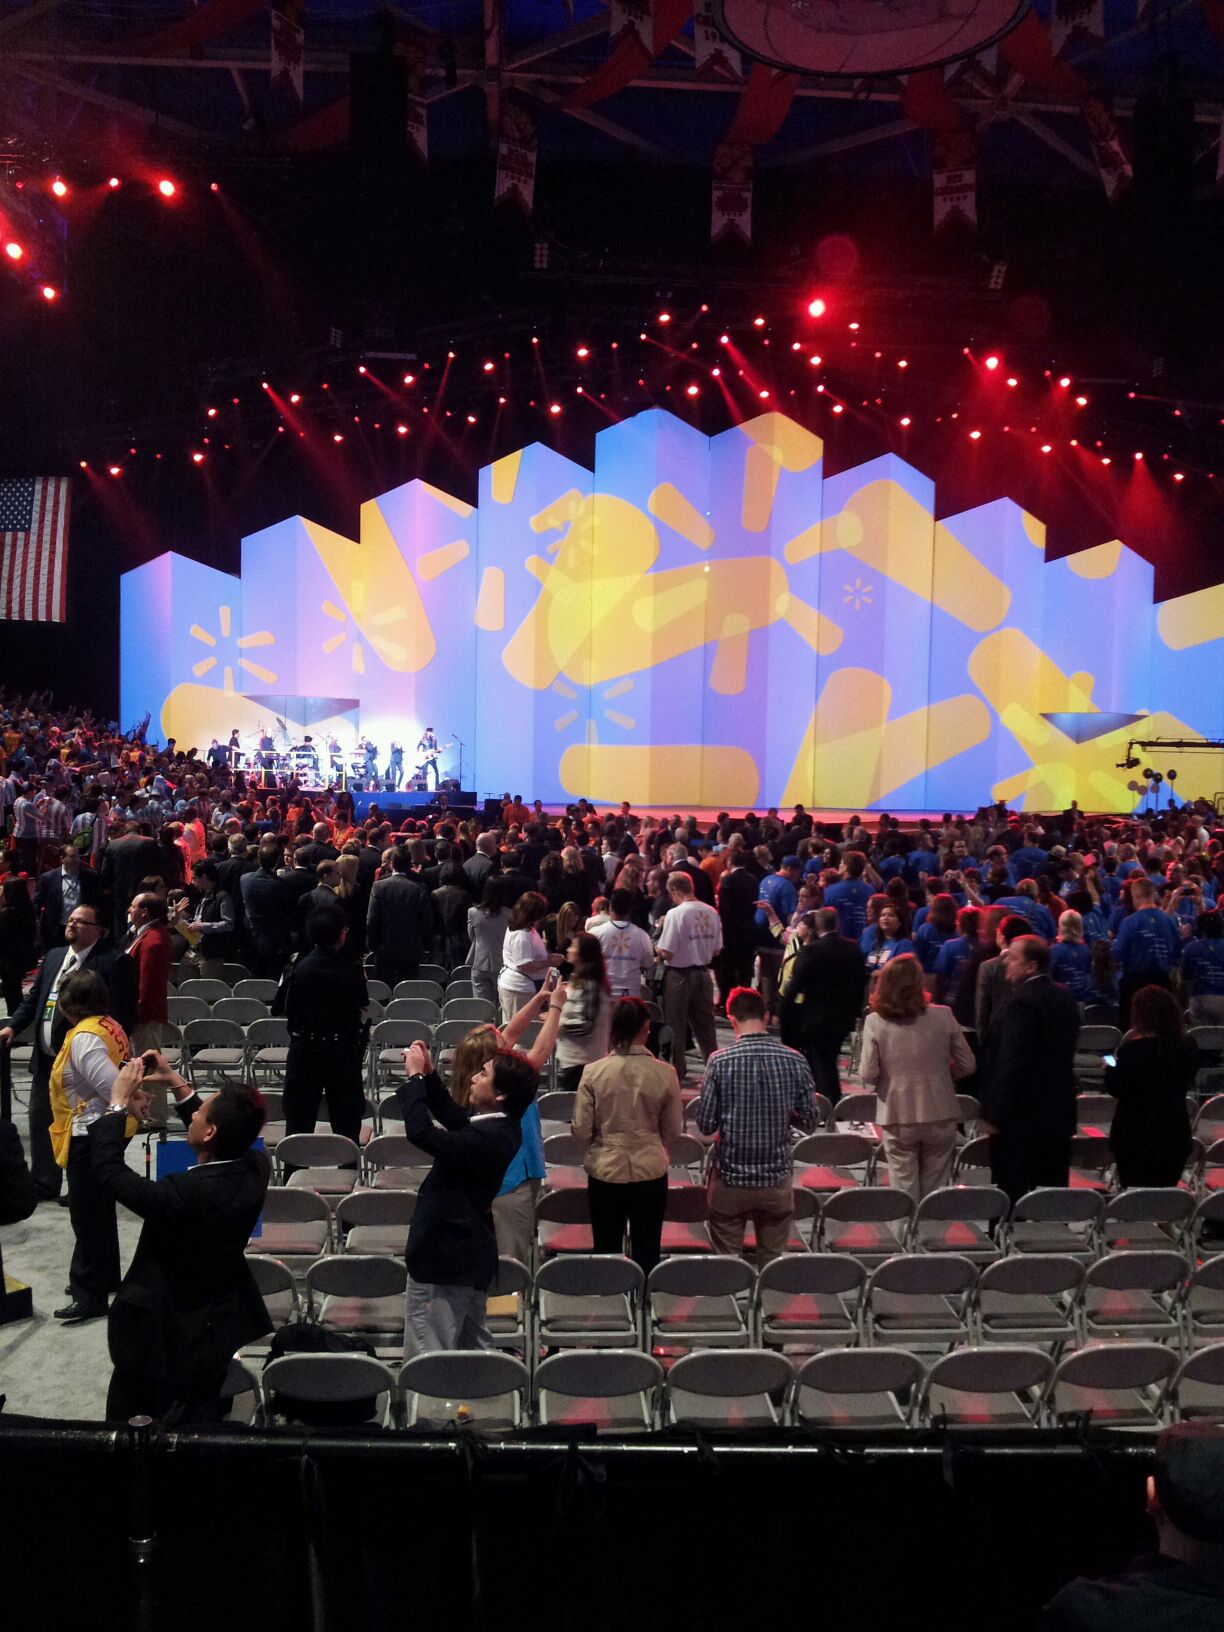 Walmart Shareholders Meeting 2013